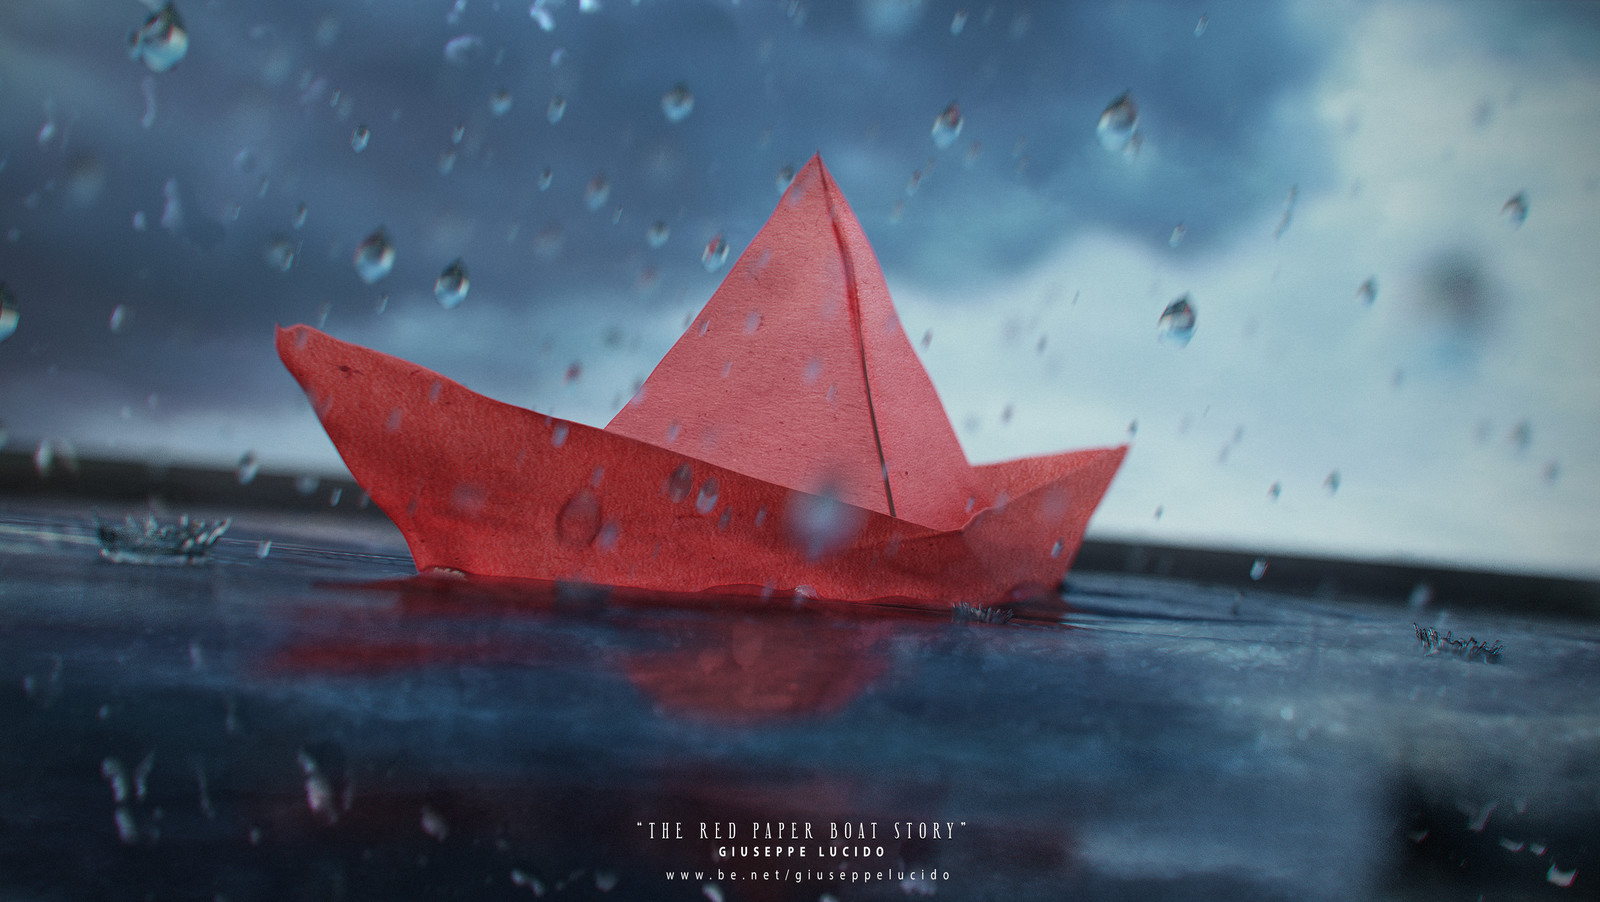 The Red Paper Boat Story